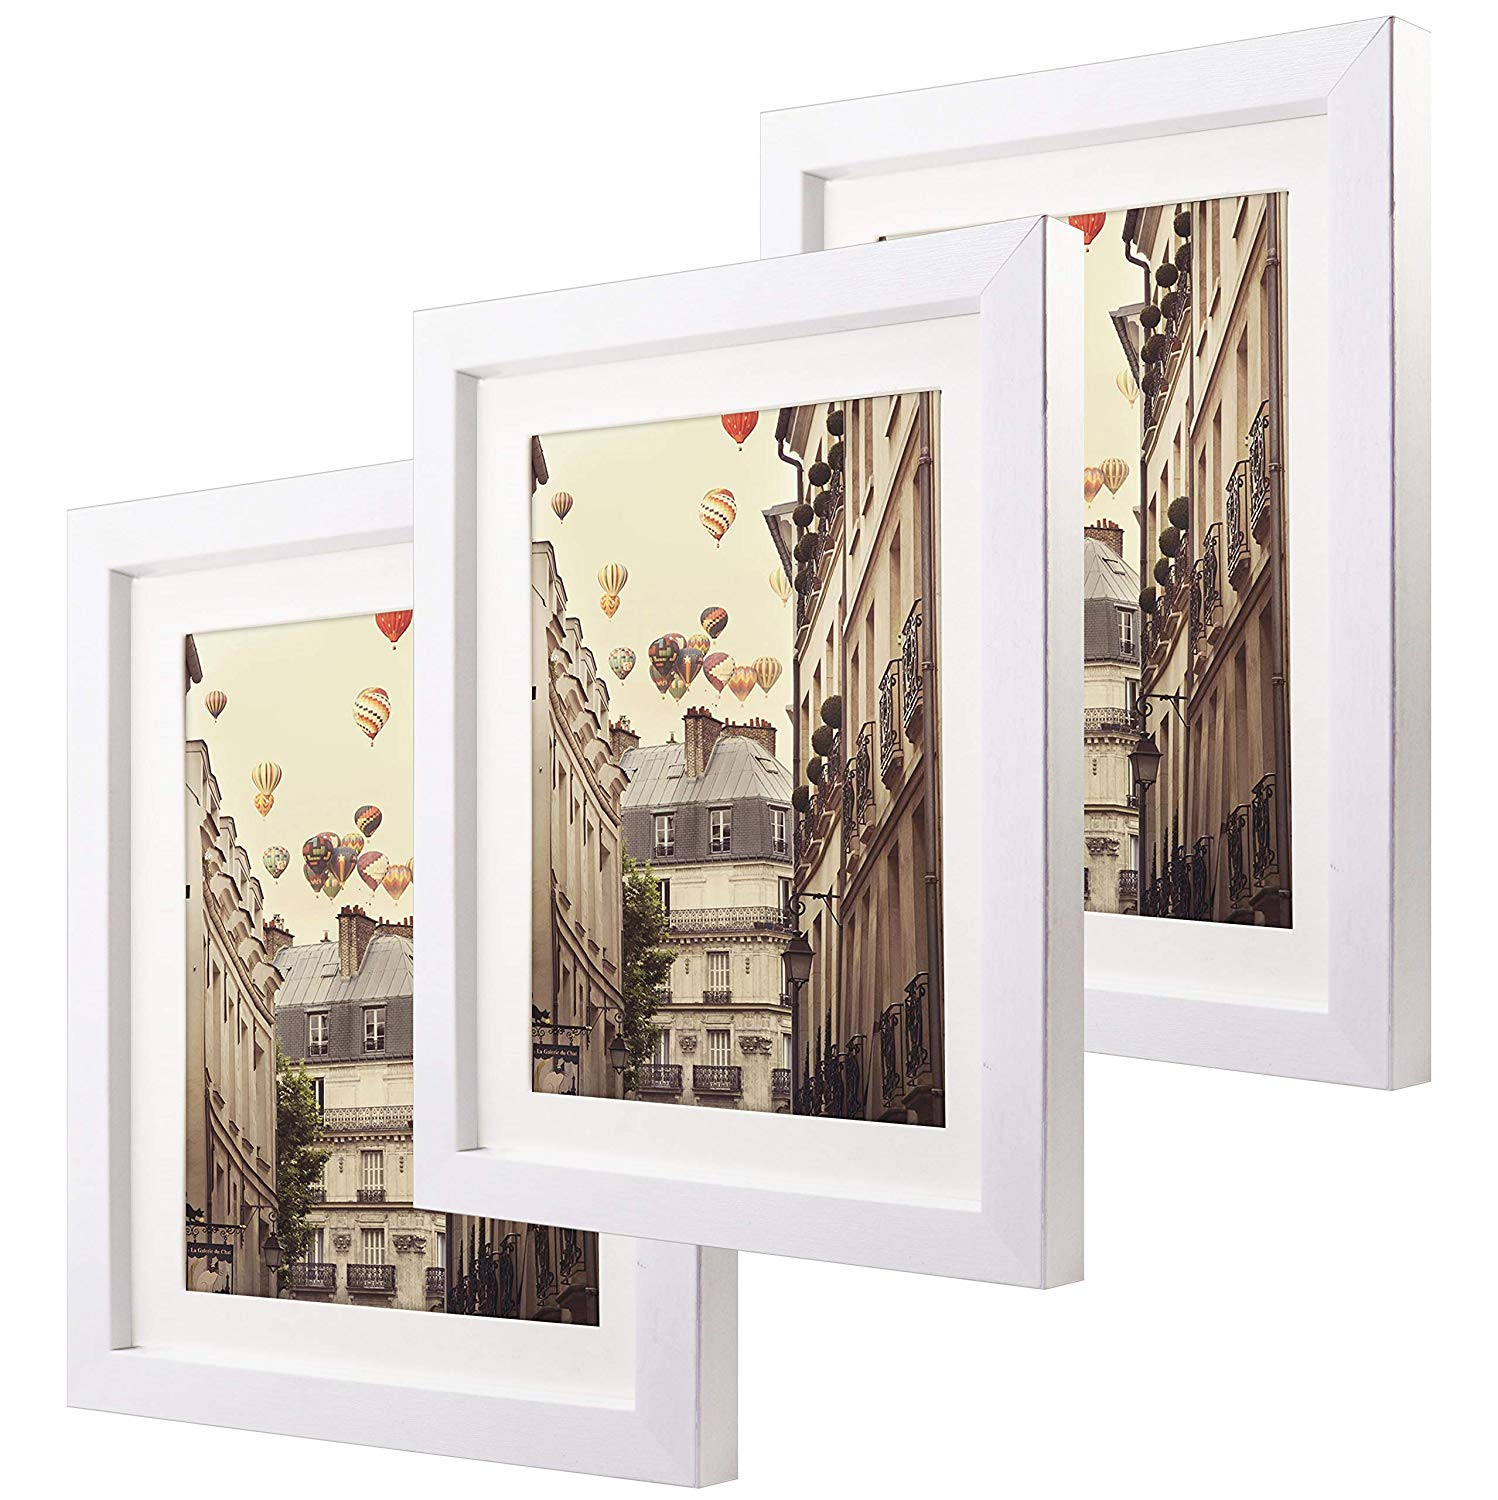 8x10 Matted Picture Frames Set of 3 Glass Front Made to Display Pictures 6x8 with Mat or 8x10 Without Mat for Wall & Tabletop(White)